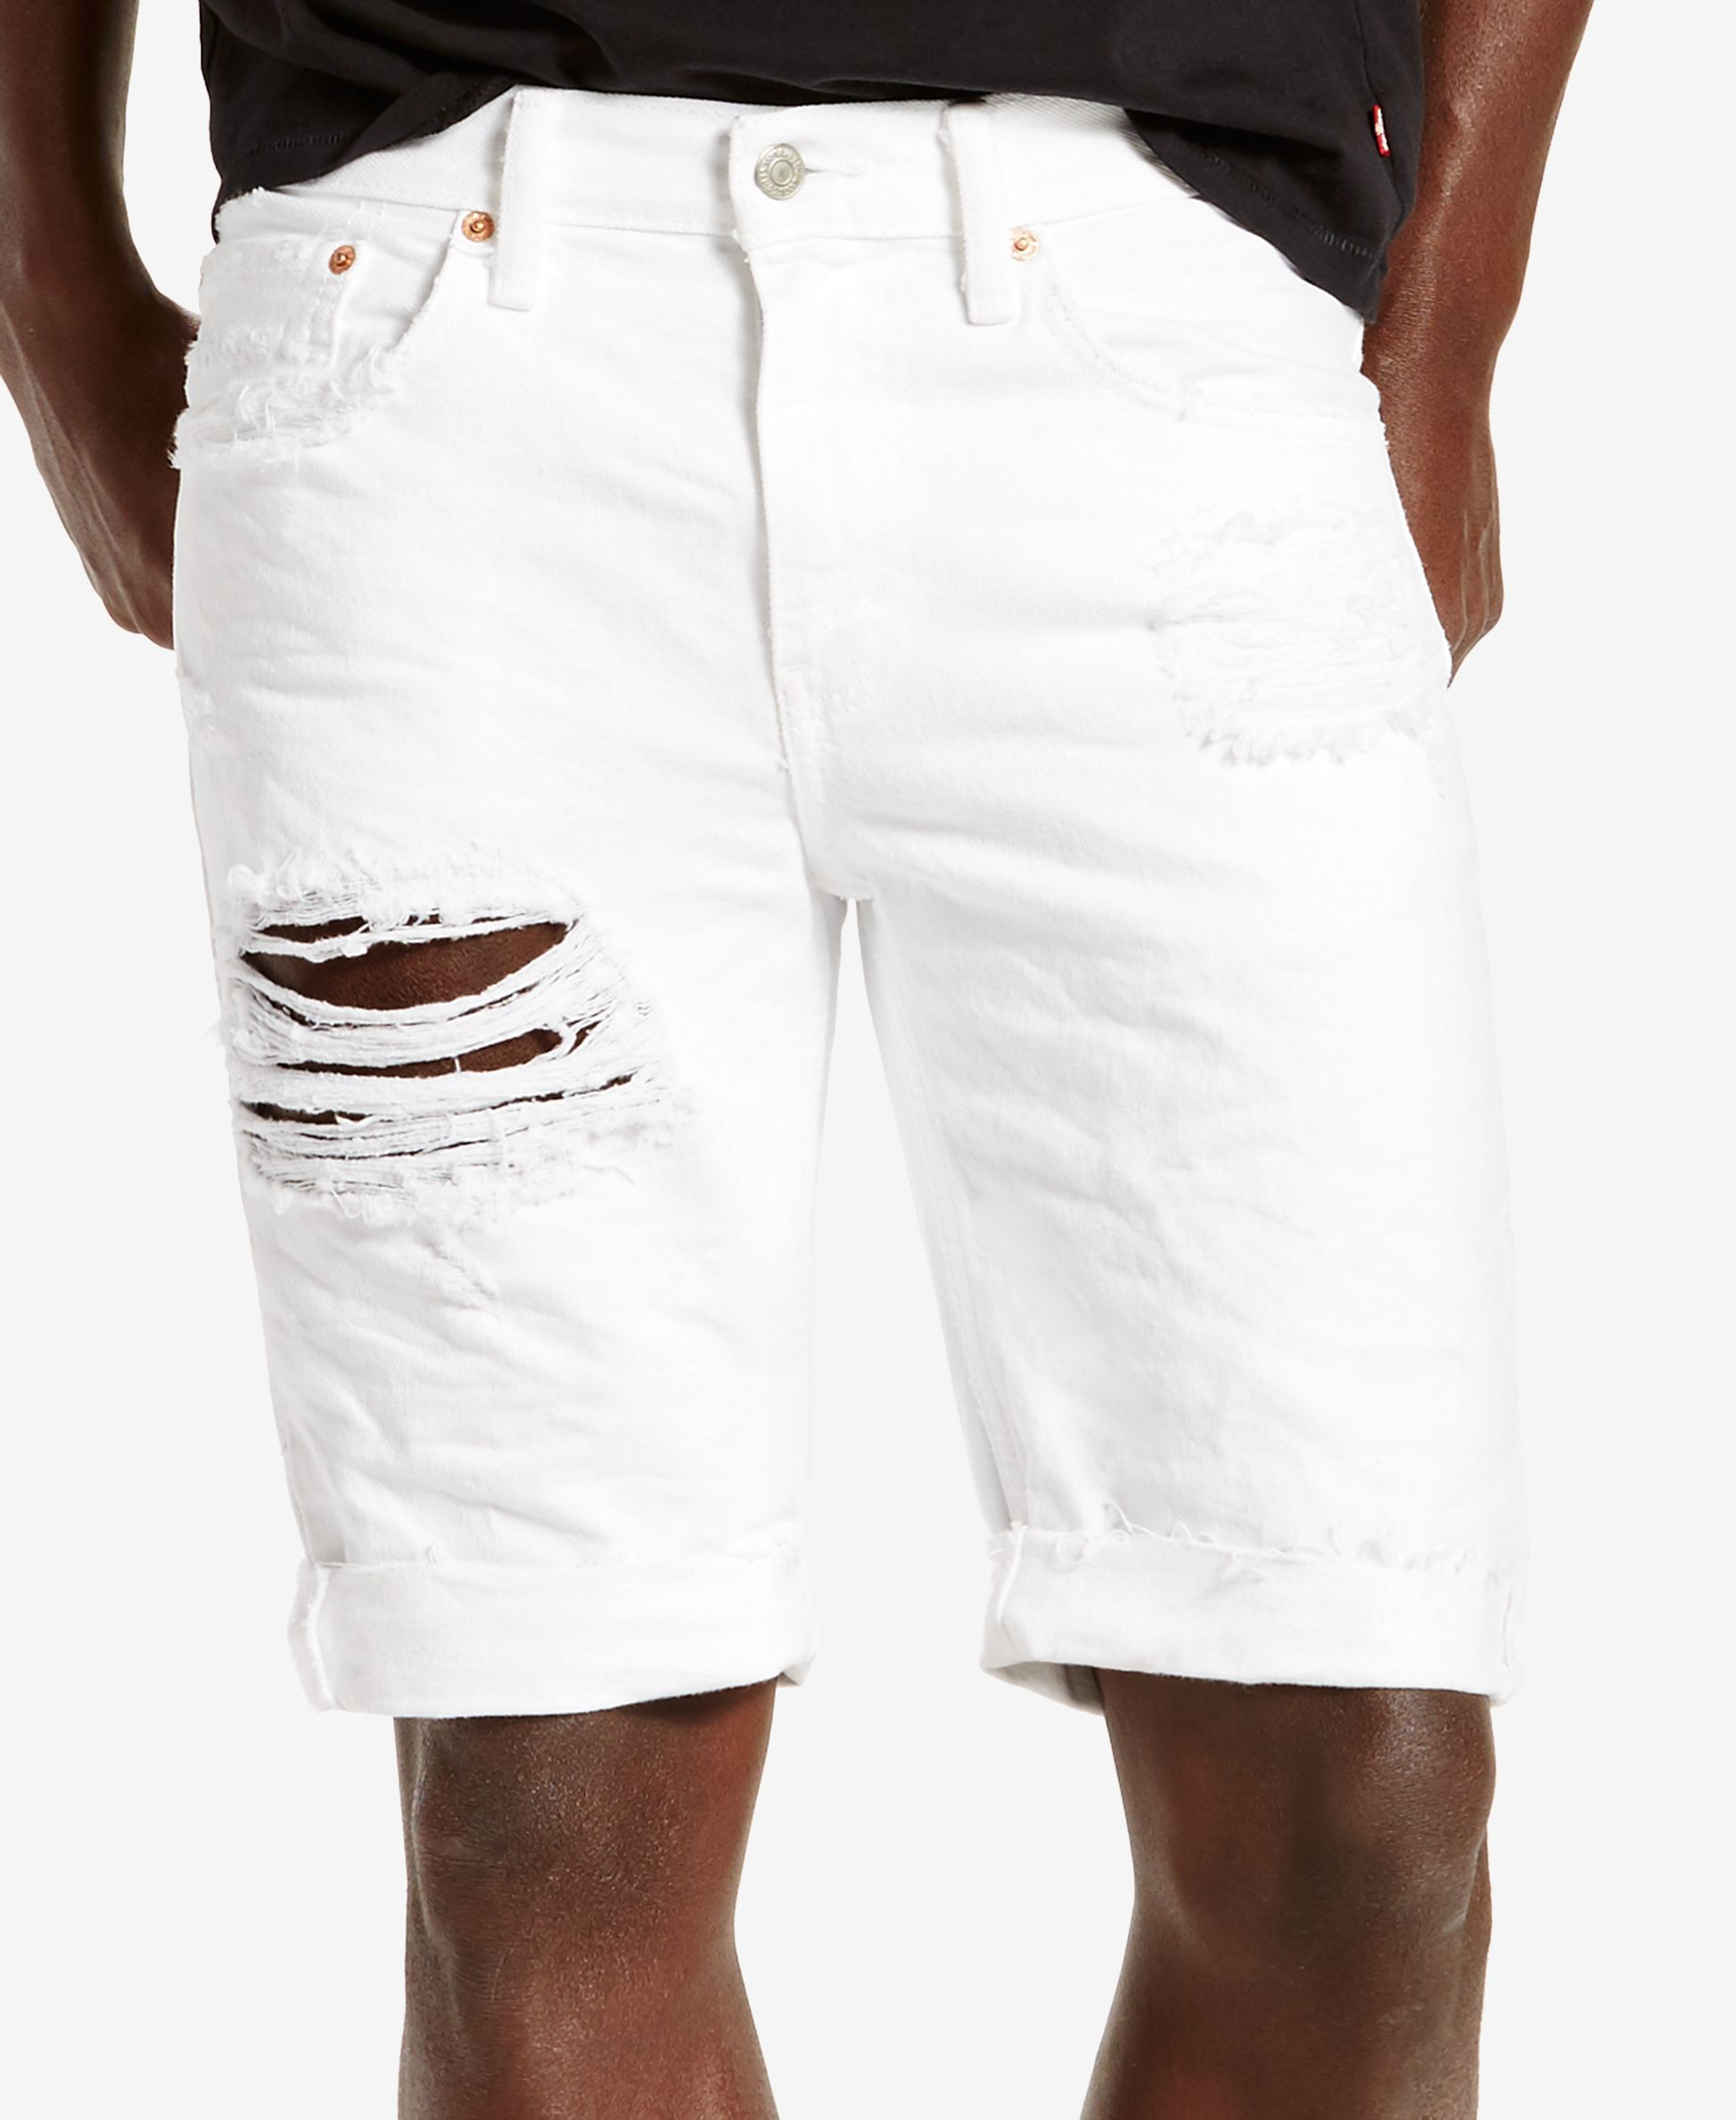 b02d30b4ca Levi's Men's 511 Slim-Fit Cutoff Ripped Jean Shorts #MensJeans ...